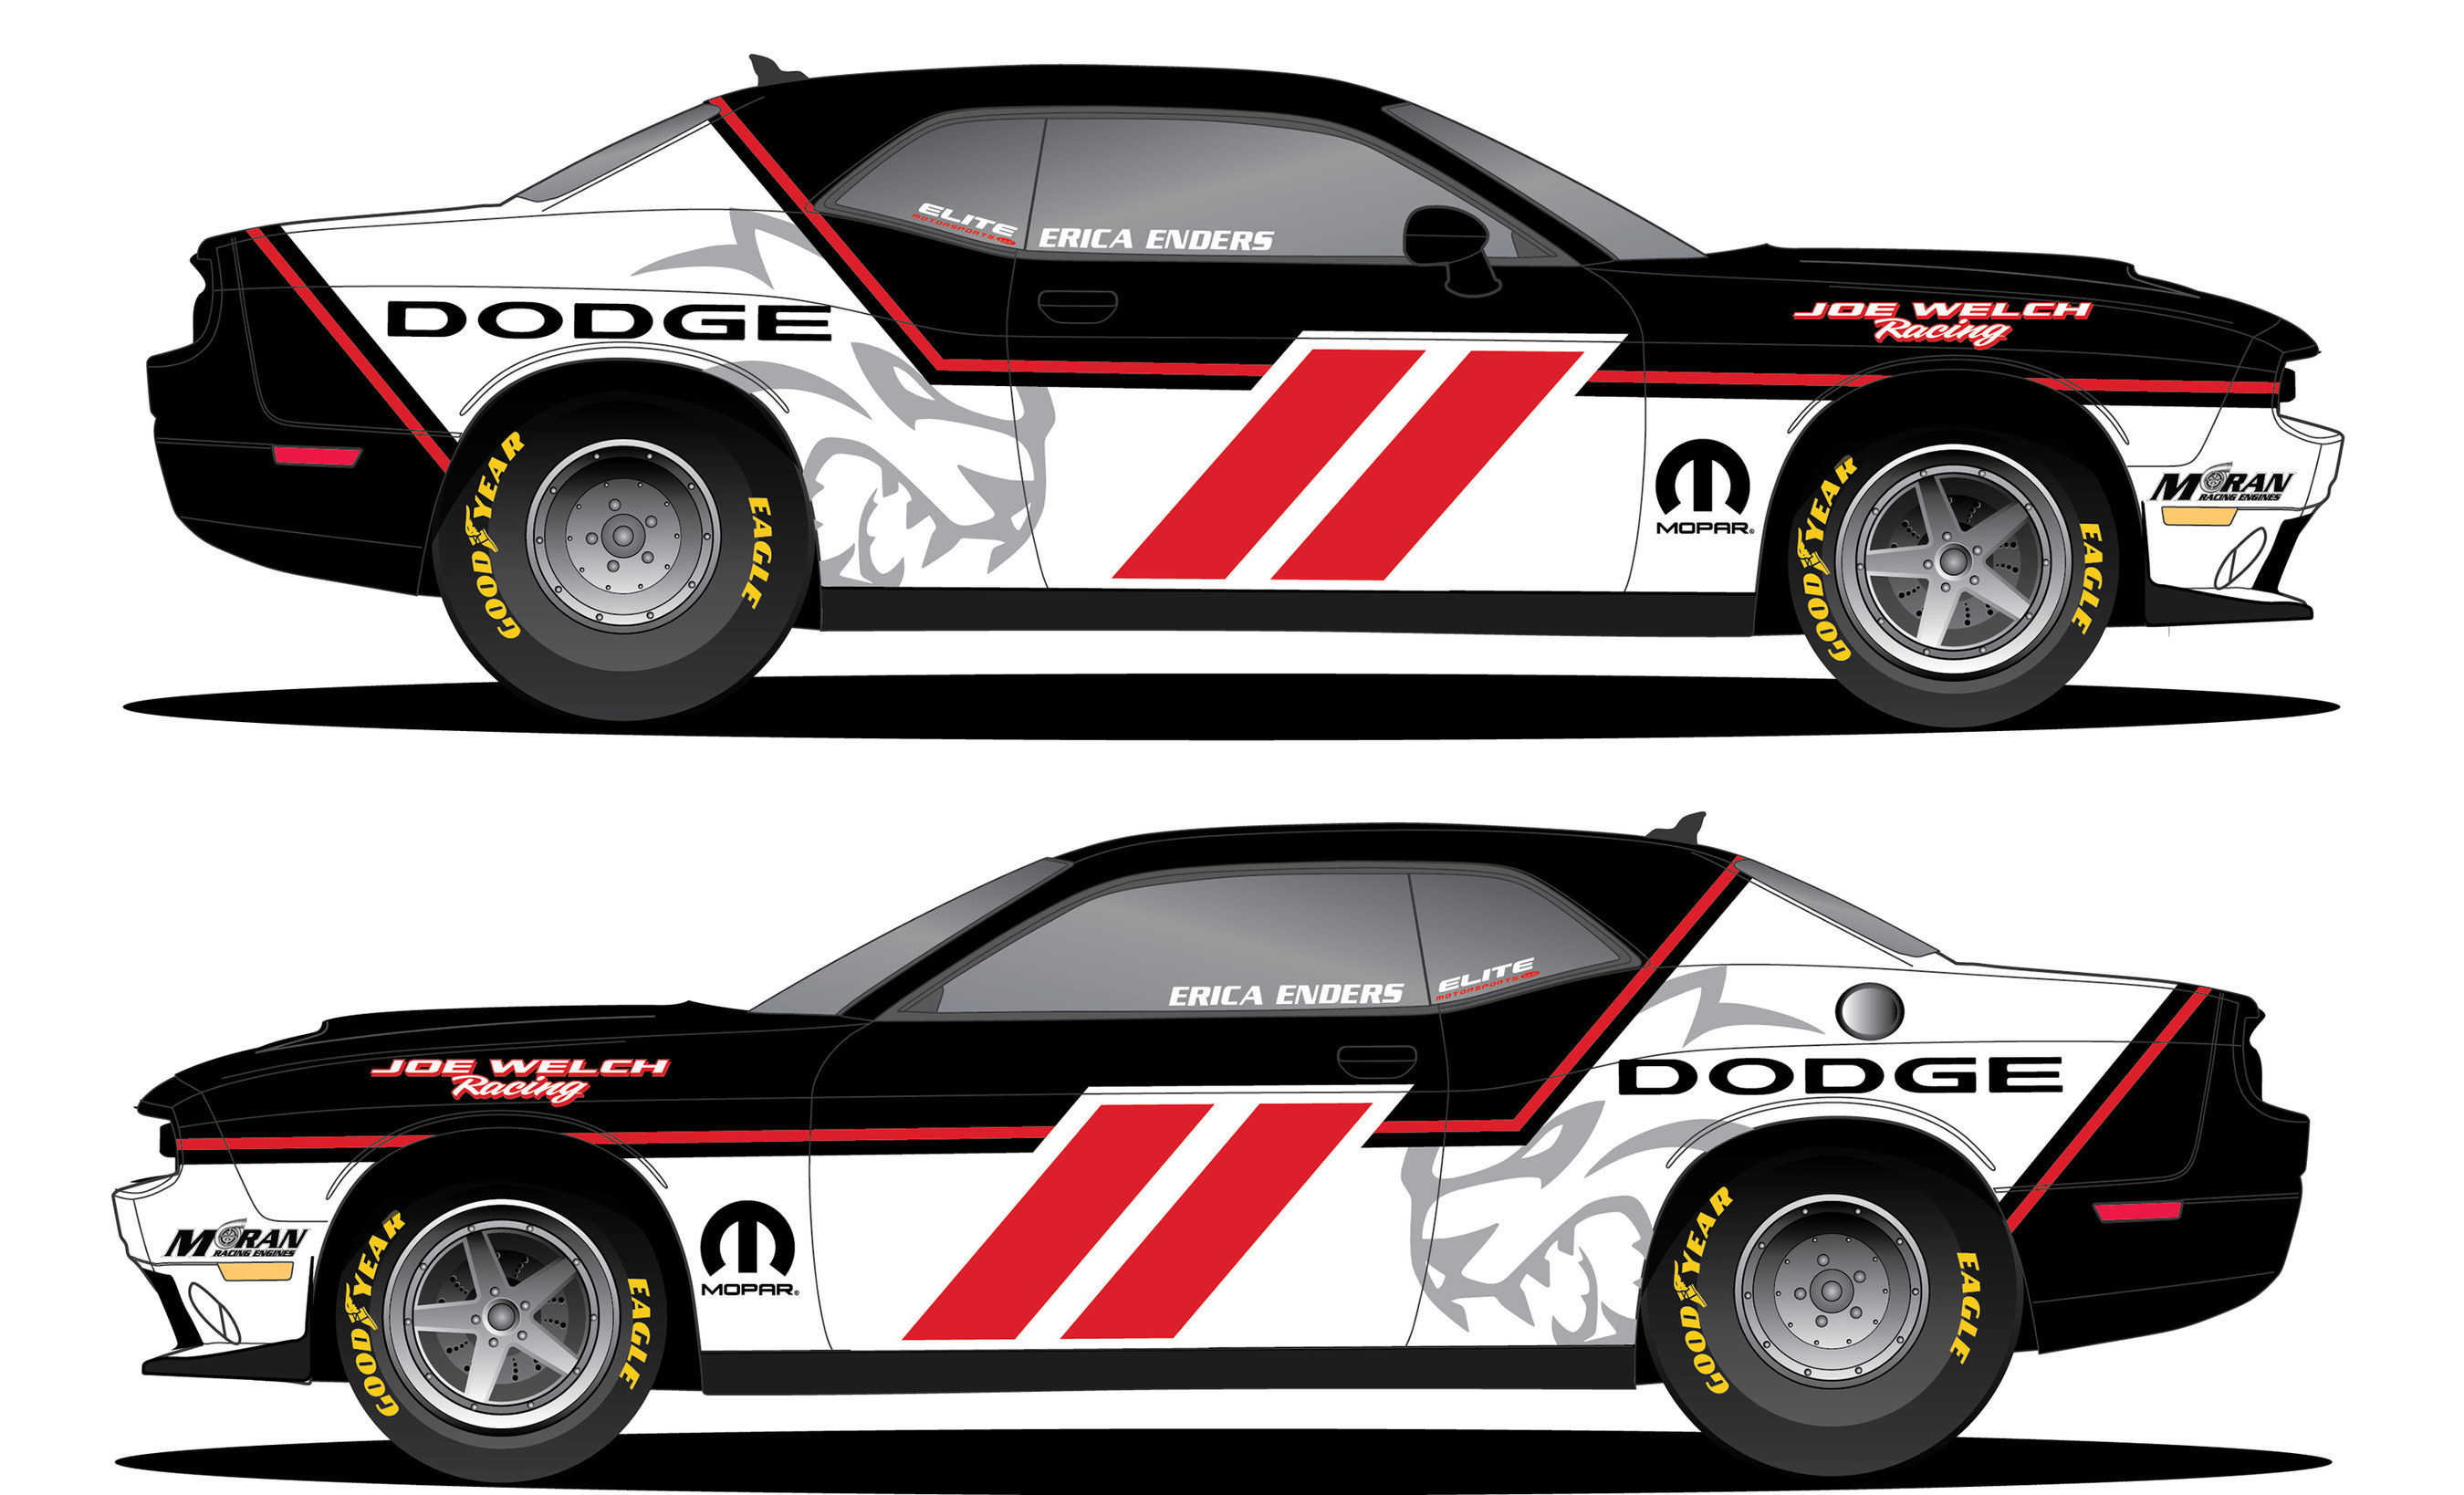 Mopar to Highlight Sportsman Racing Pro Drivers Positioning for